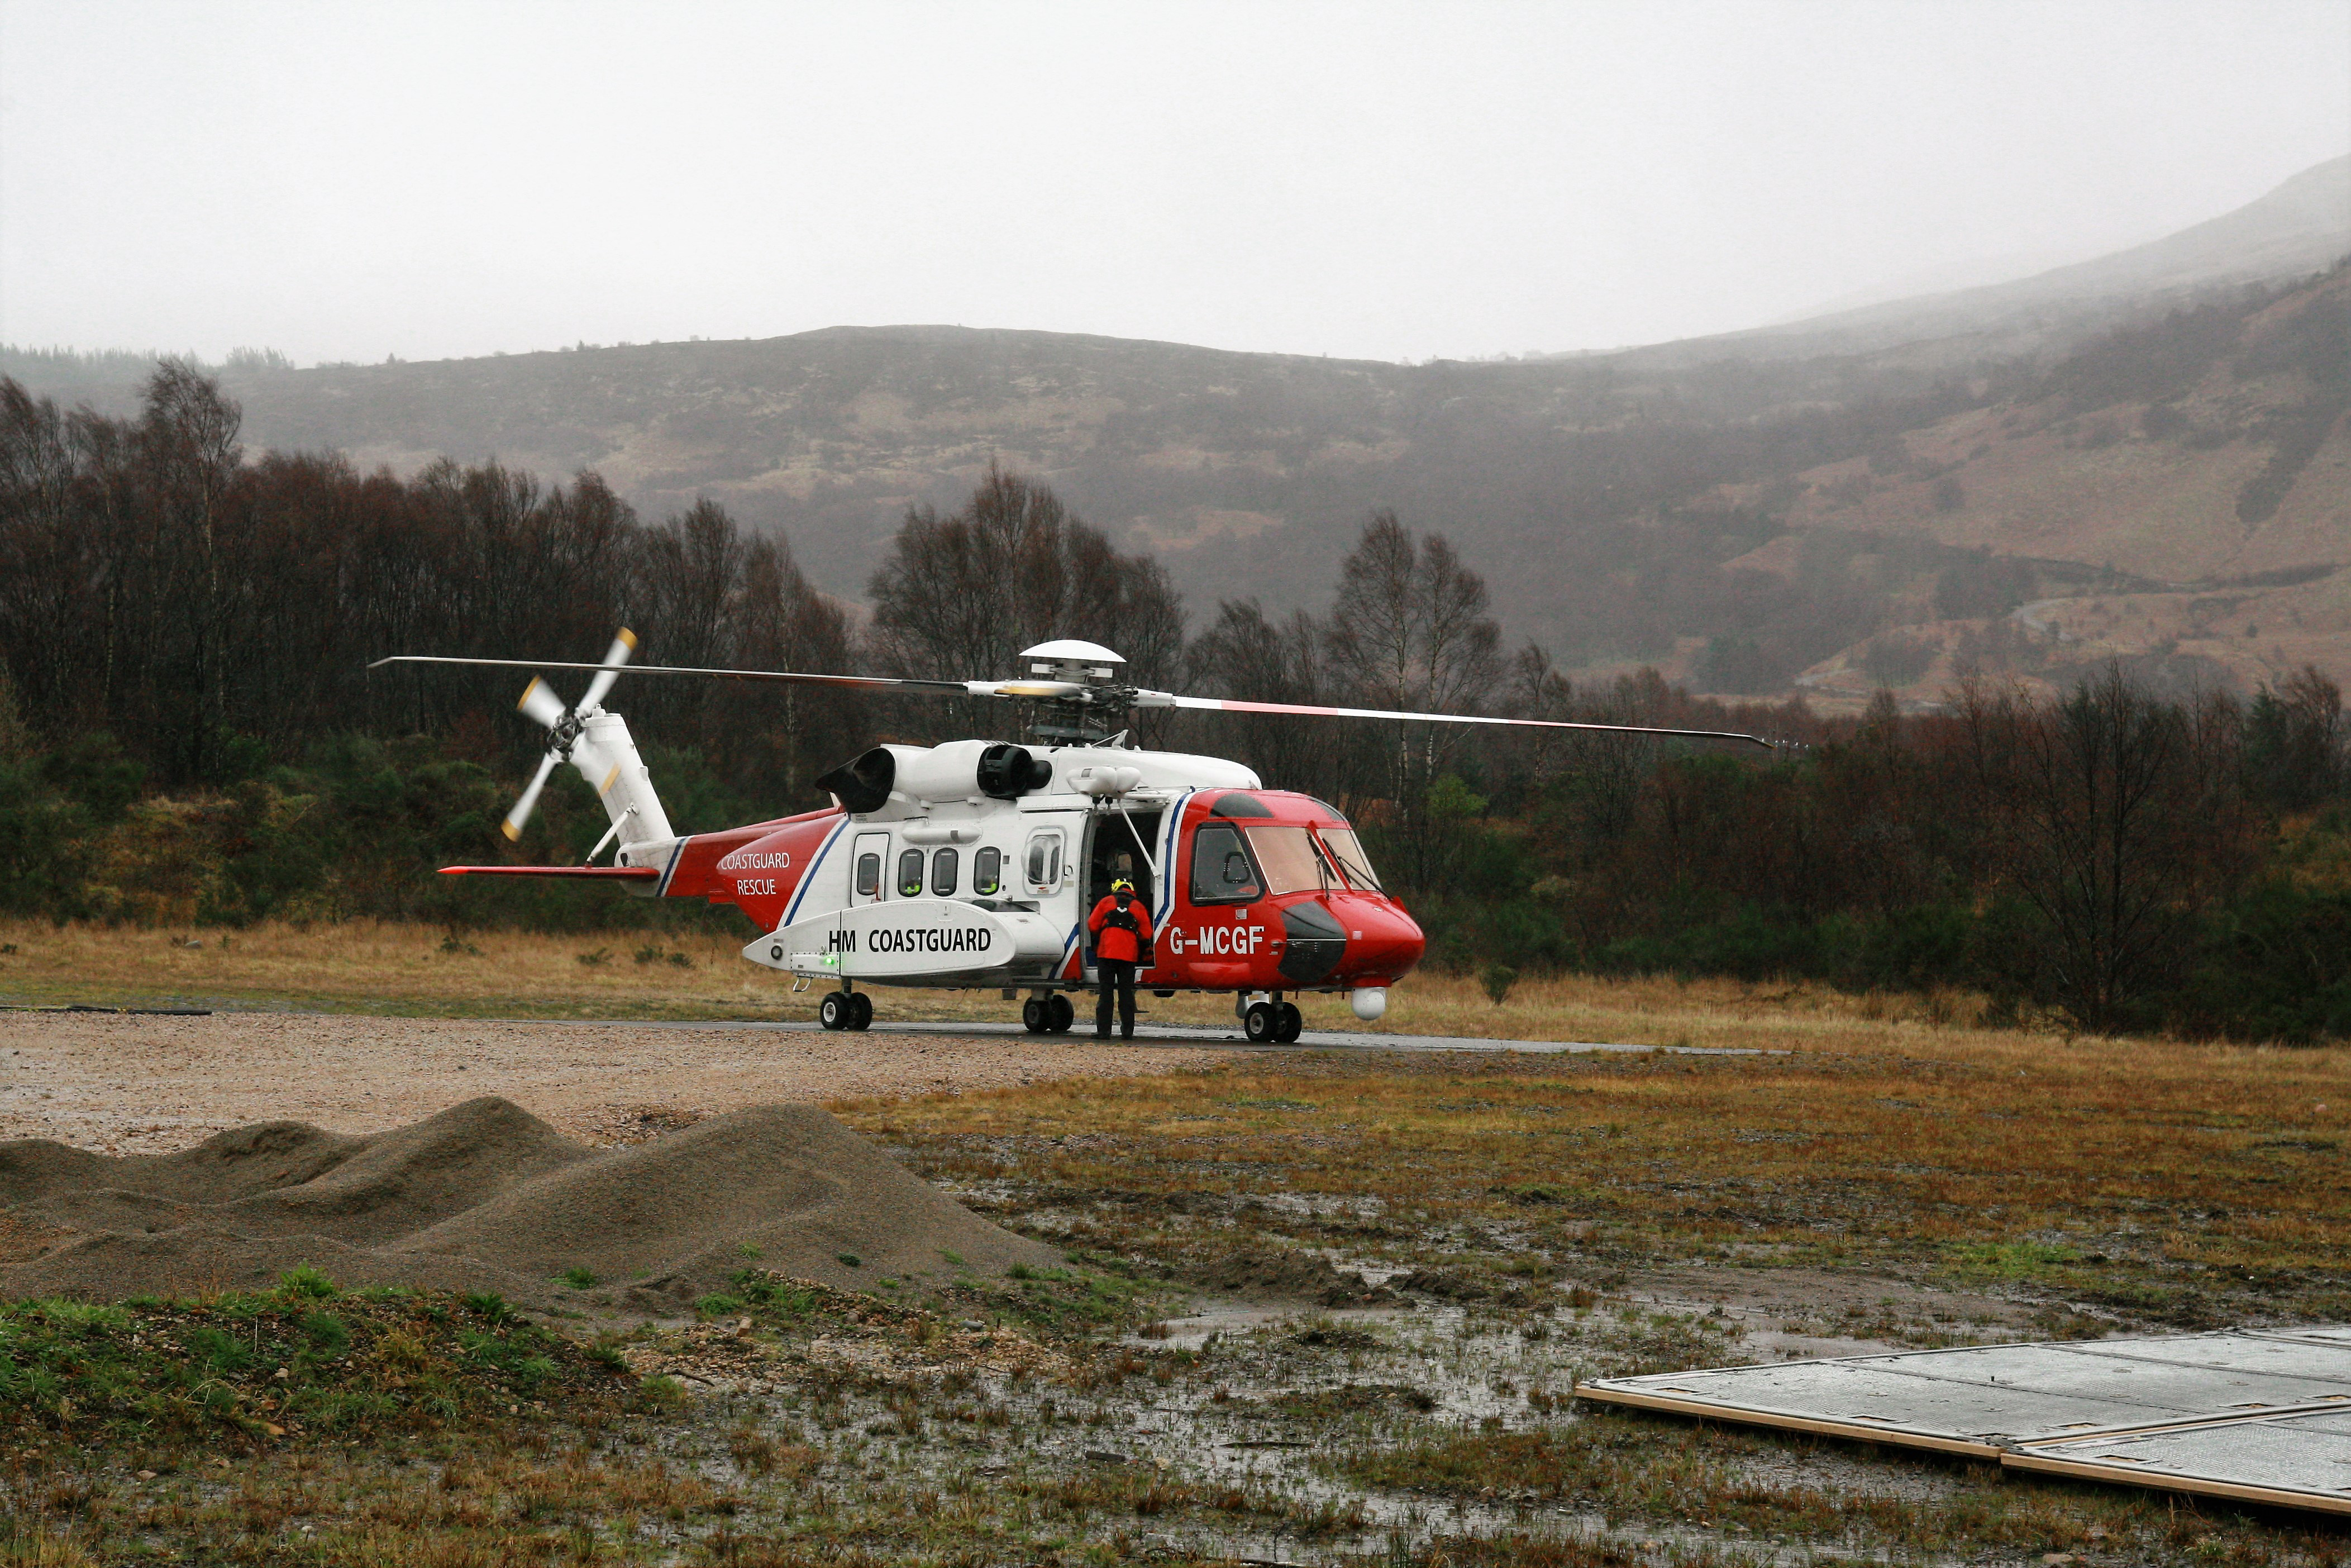 The coastguard search and rescue helicopter is also on scene helping with the rescue efforts.